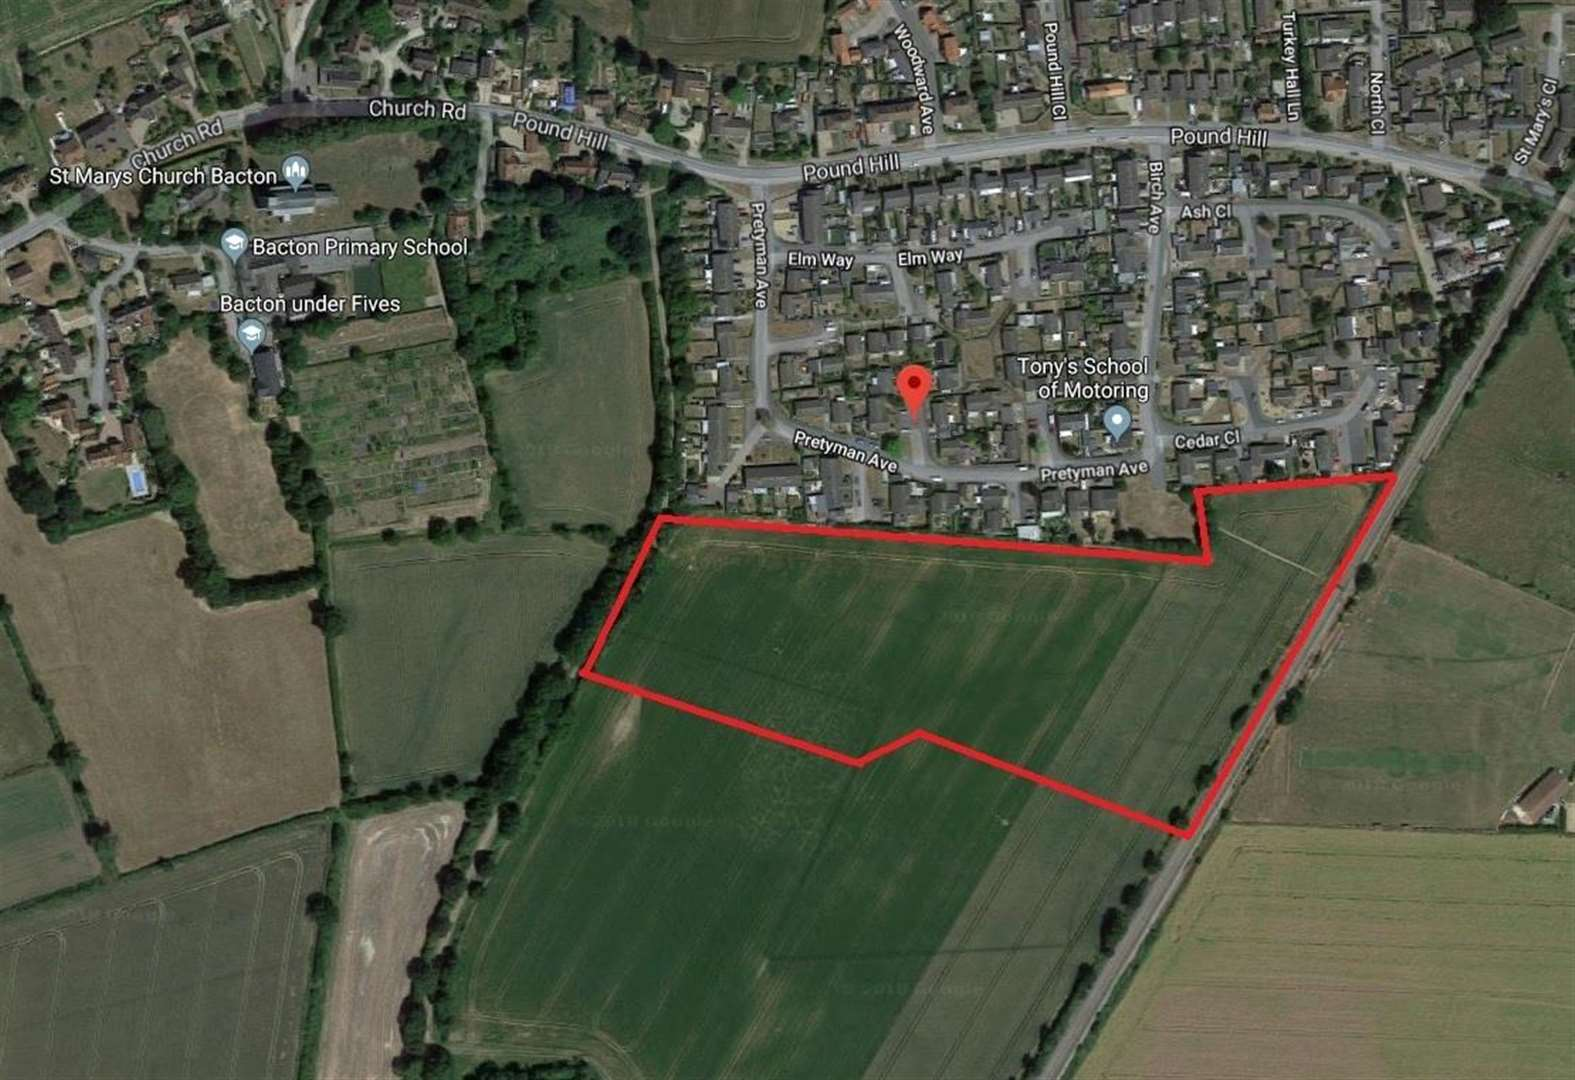 Plans lodged for 100 new homes in Bacton